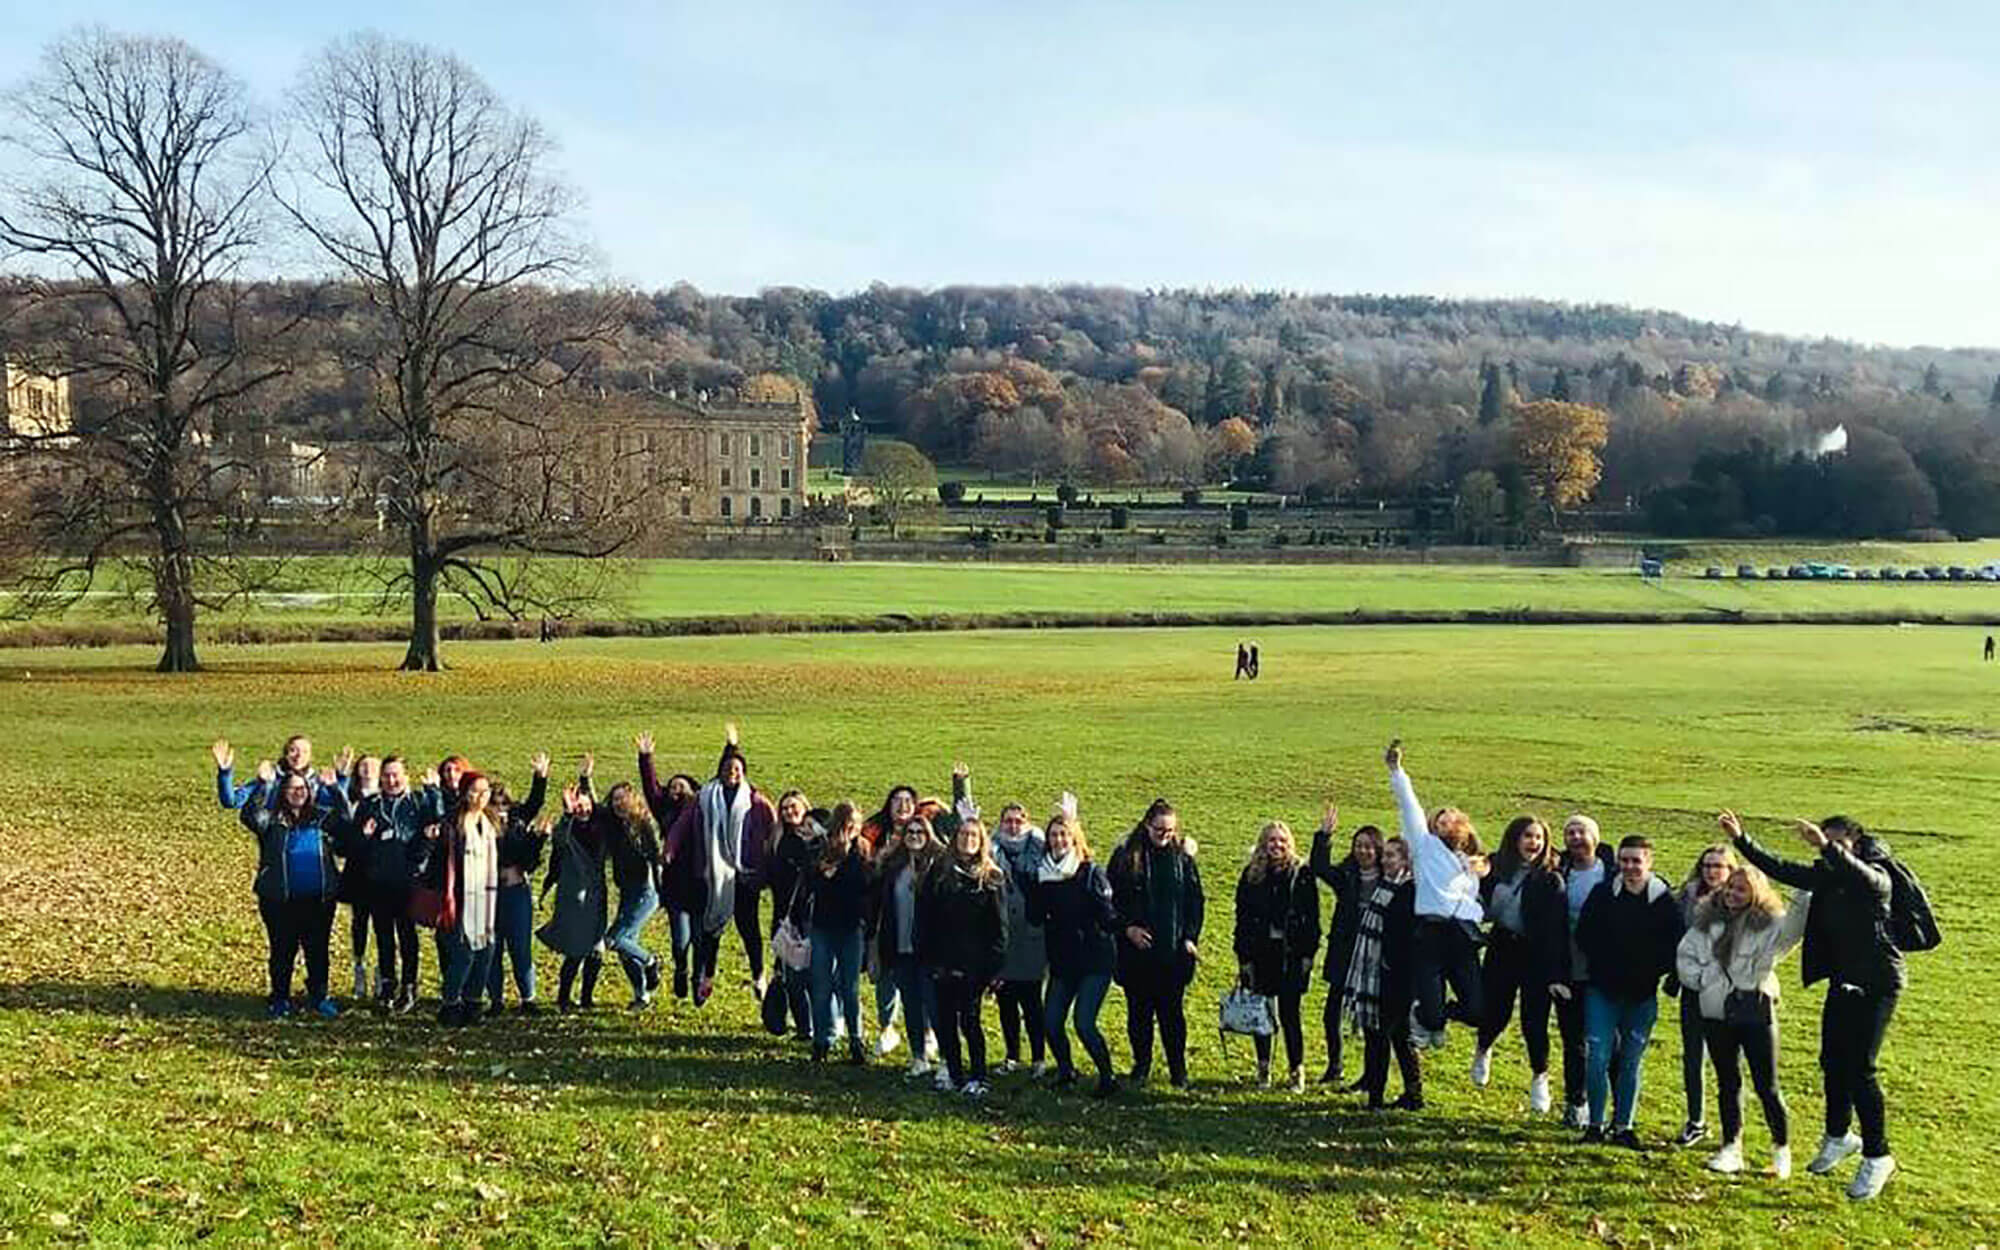 A group of students cheering in a field at Chatsworth